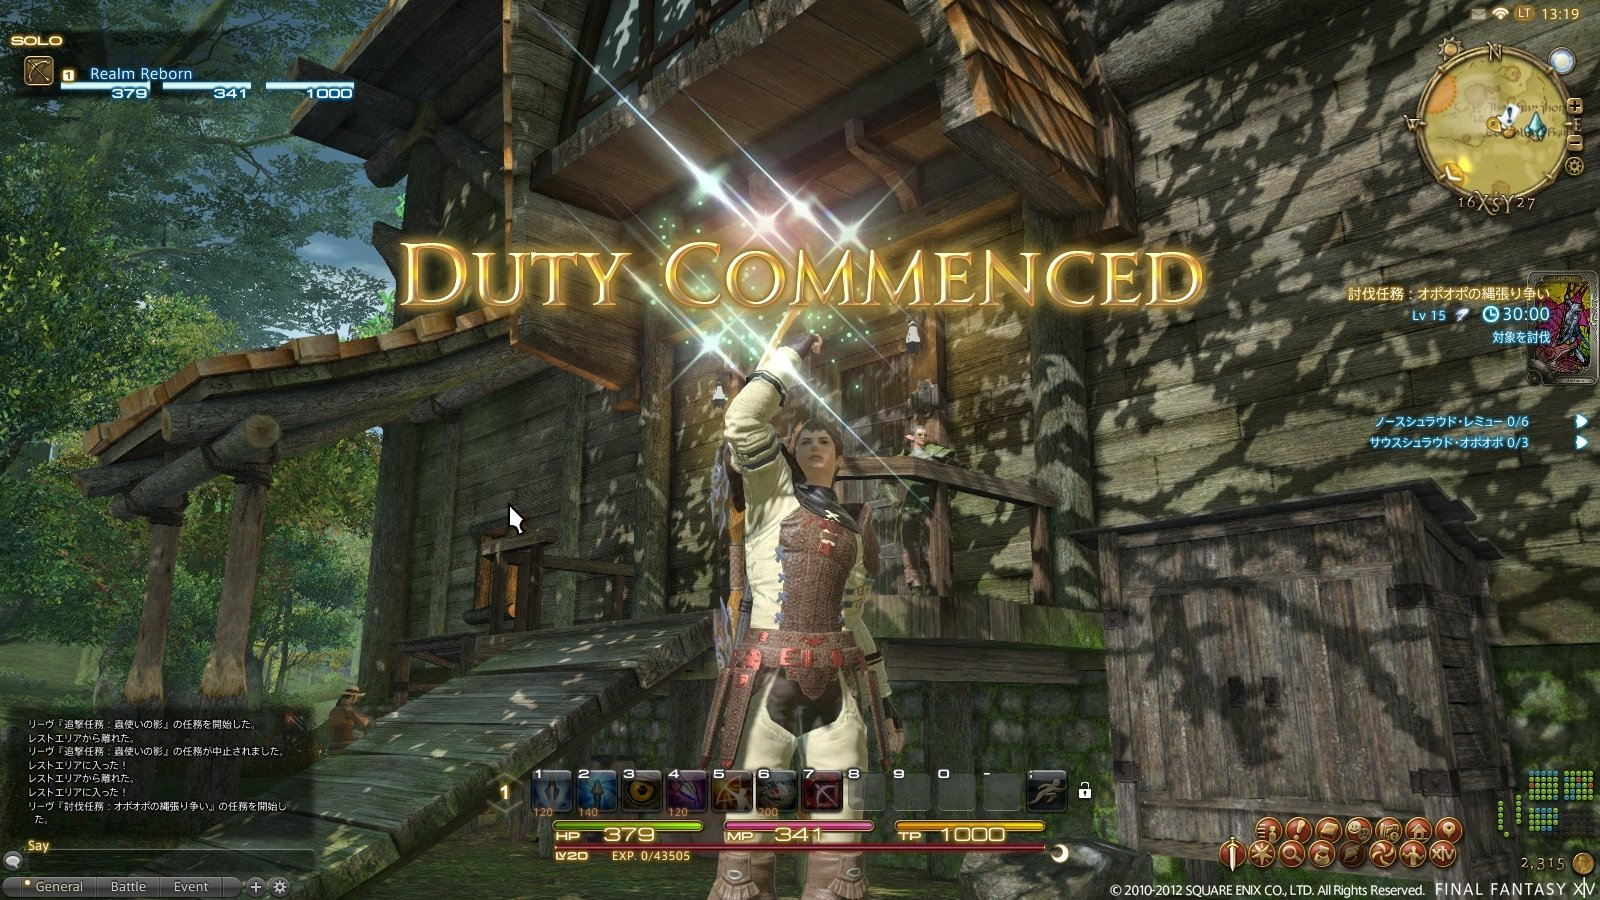 Final Fantasy XIV 2.0 Leve quests and Party combat